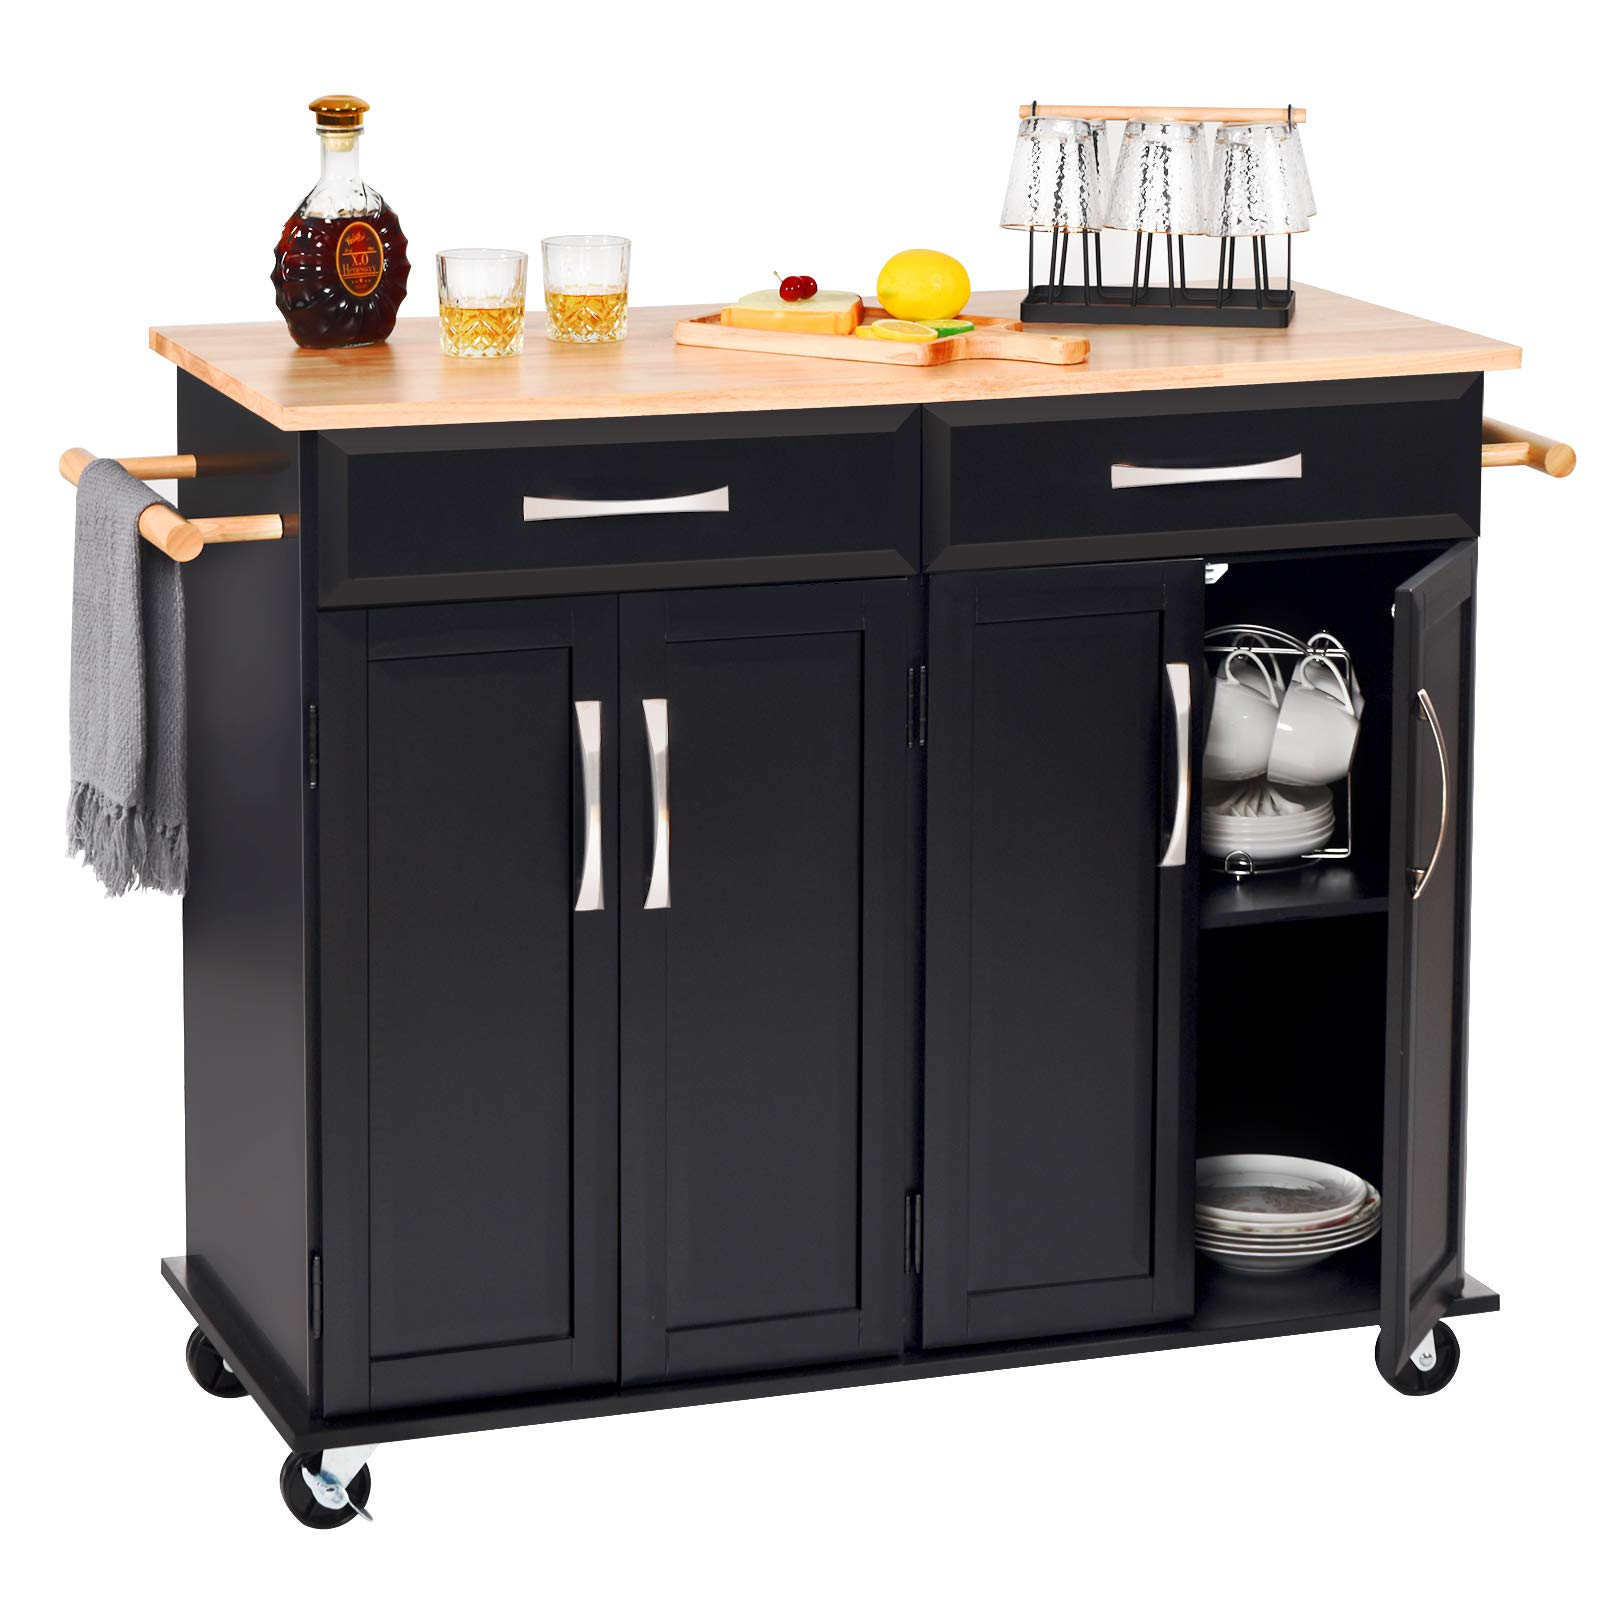 Amazon Com Catrimown Kitchen Island With Storage Drawer Cabinet Large Rolling Kitchen Island Cart On Wheels Towel Rack Lockable Wheels And Rubber Wood Countertop For Home Black Kitchen Islands Carts